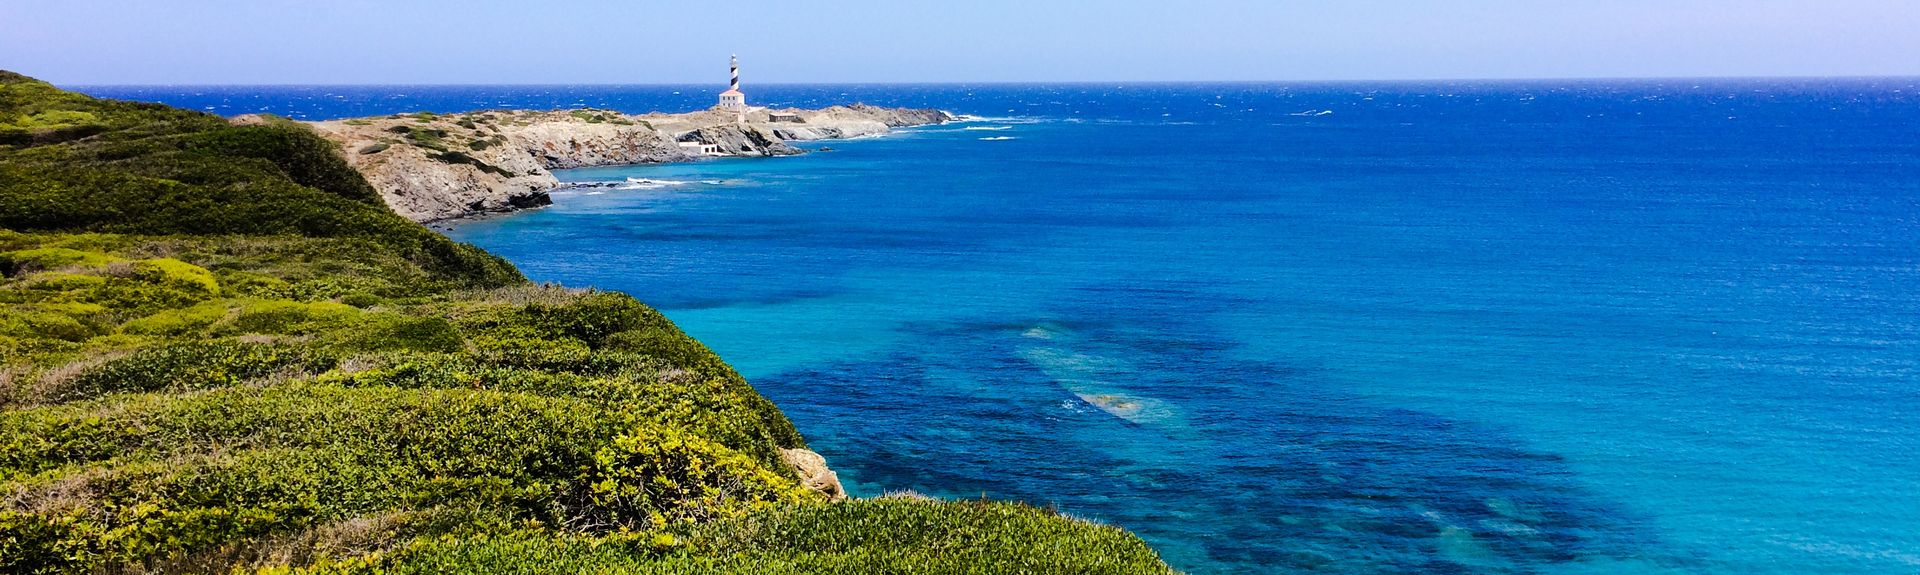 Ciutadella Lighthouse, Ciutadella de Menorca, Balearic Islands, Spain